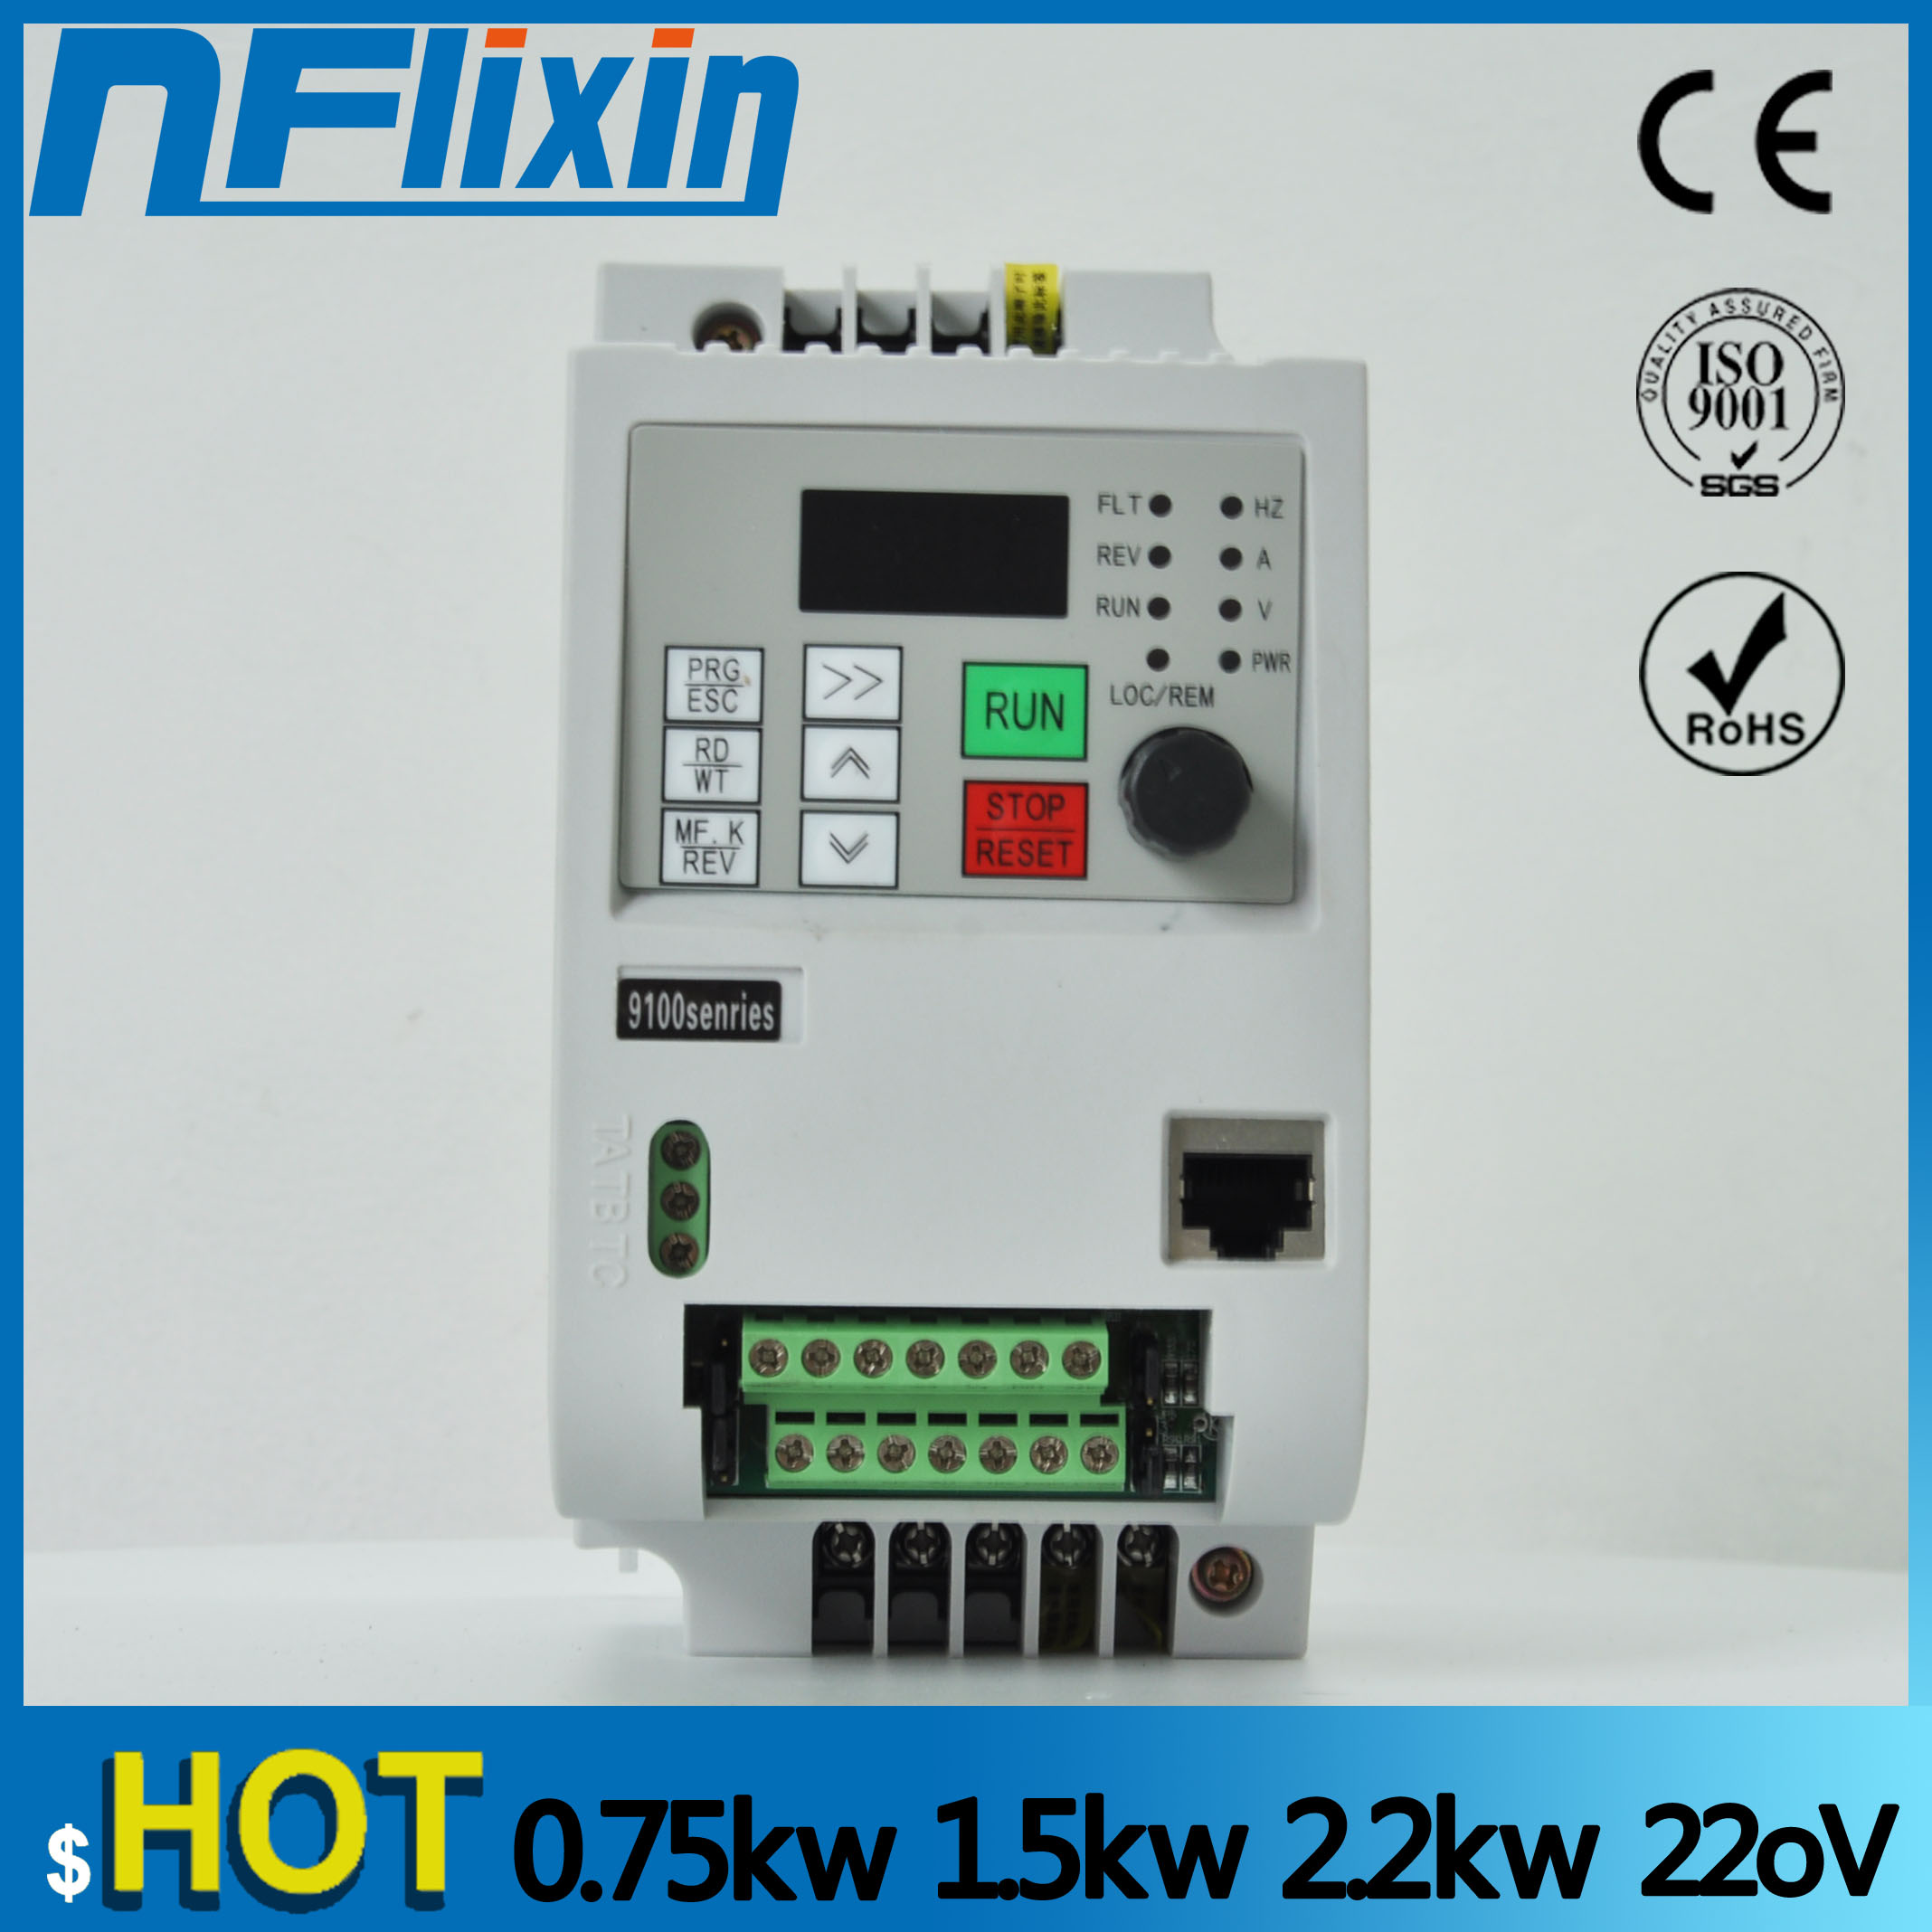 220V 0.75KW 1.5KW 2.2KW VFD Single-phase Input Frequency Converter 3P Output VARIABLE FREQUENCY DRIVE INVERTER